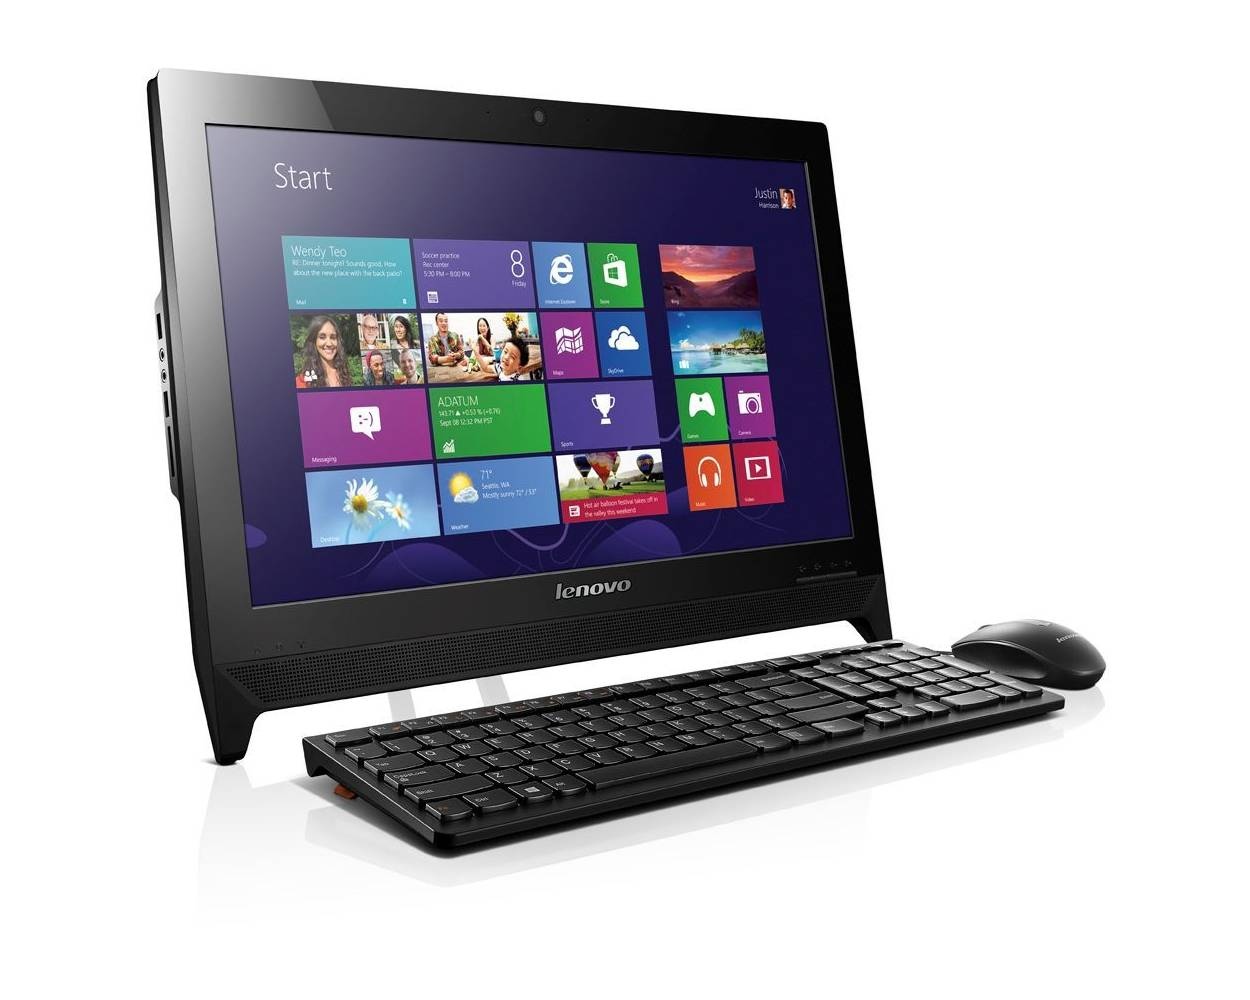 LENOVO S200Z ALL-IN-ONE 19.5 inch; HD NON-TOUCH BLACK PC